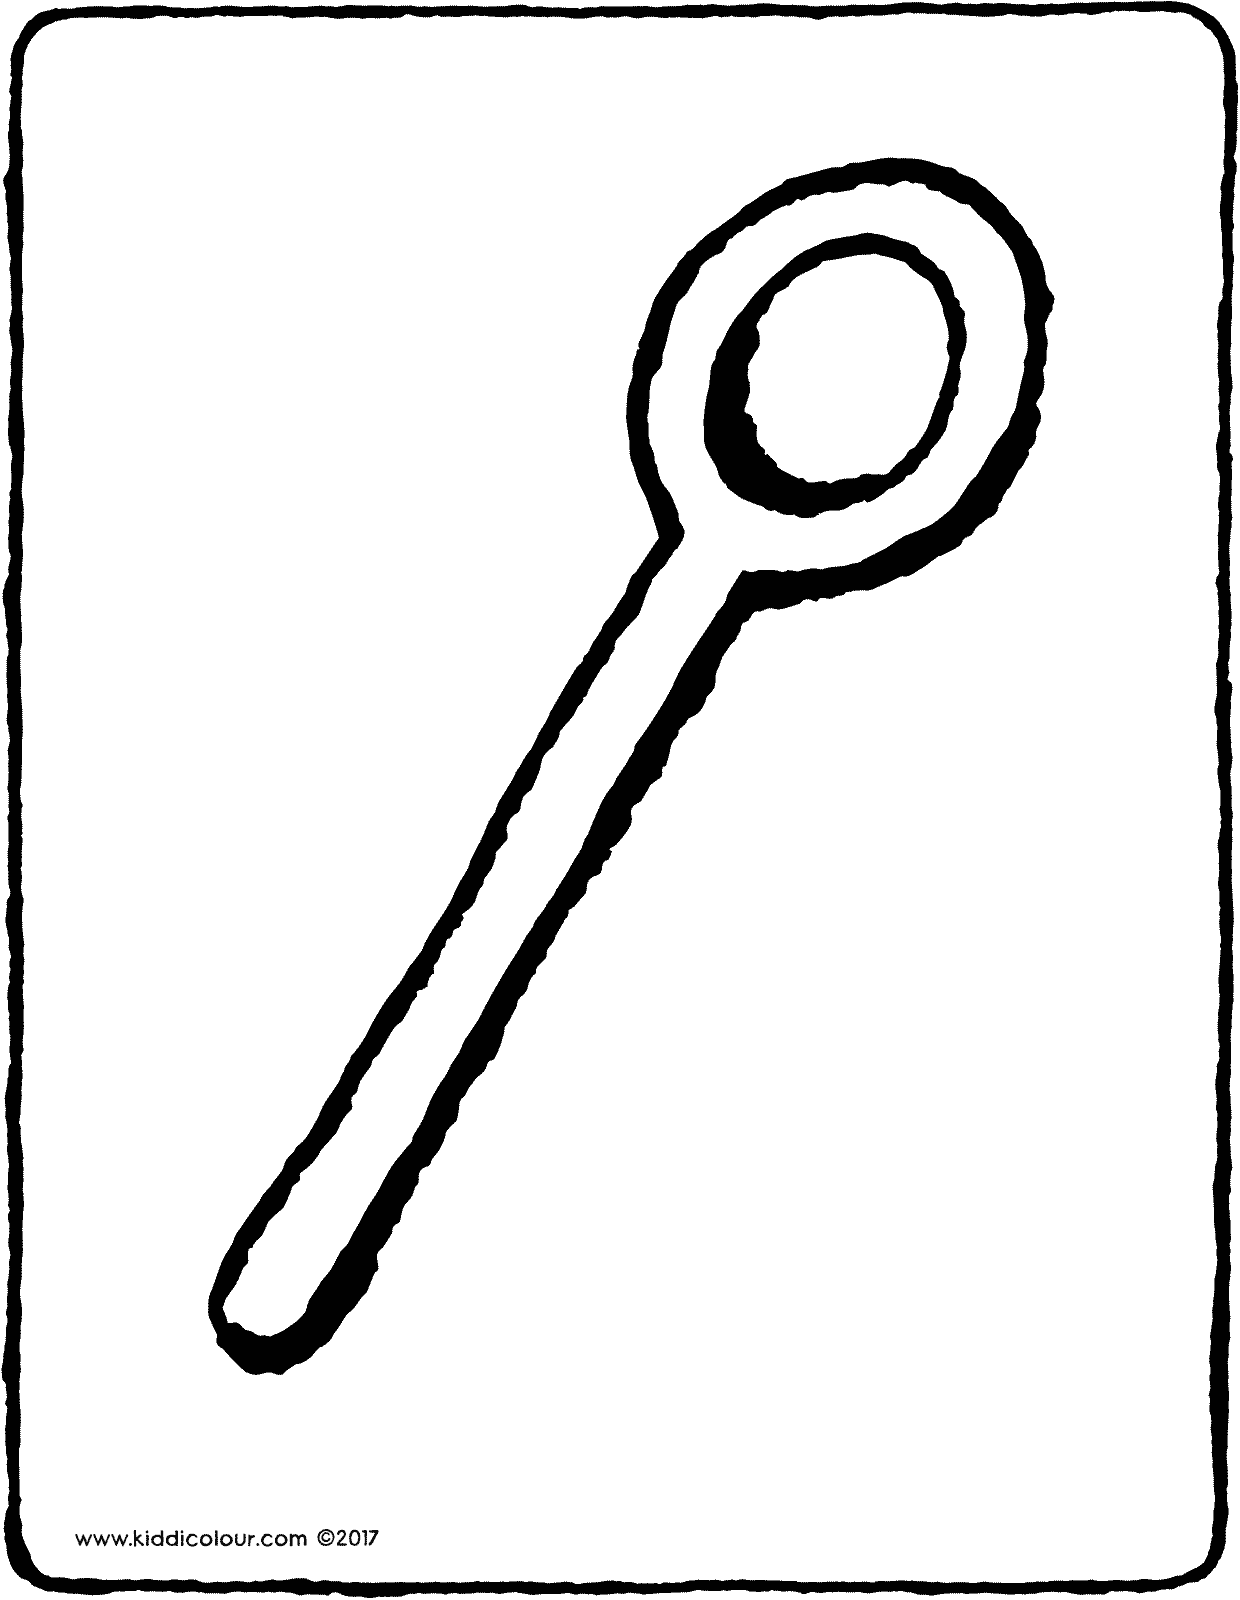 wooden spoon colouring page drawing picture 01V